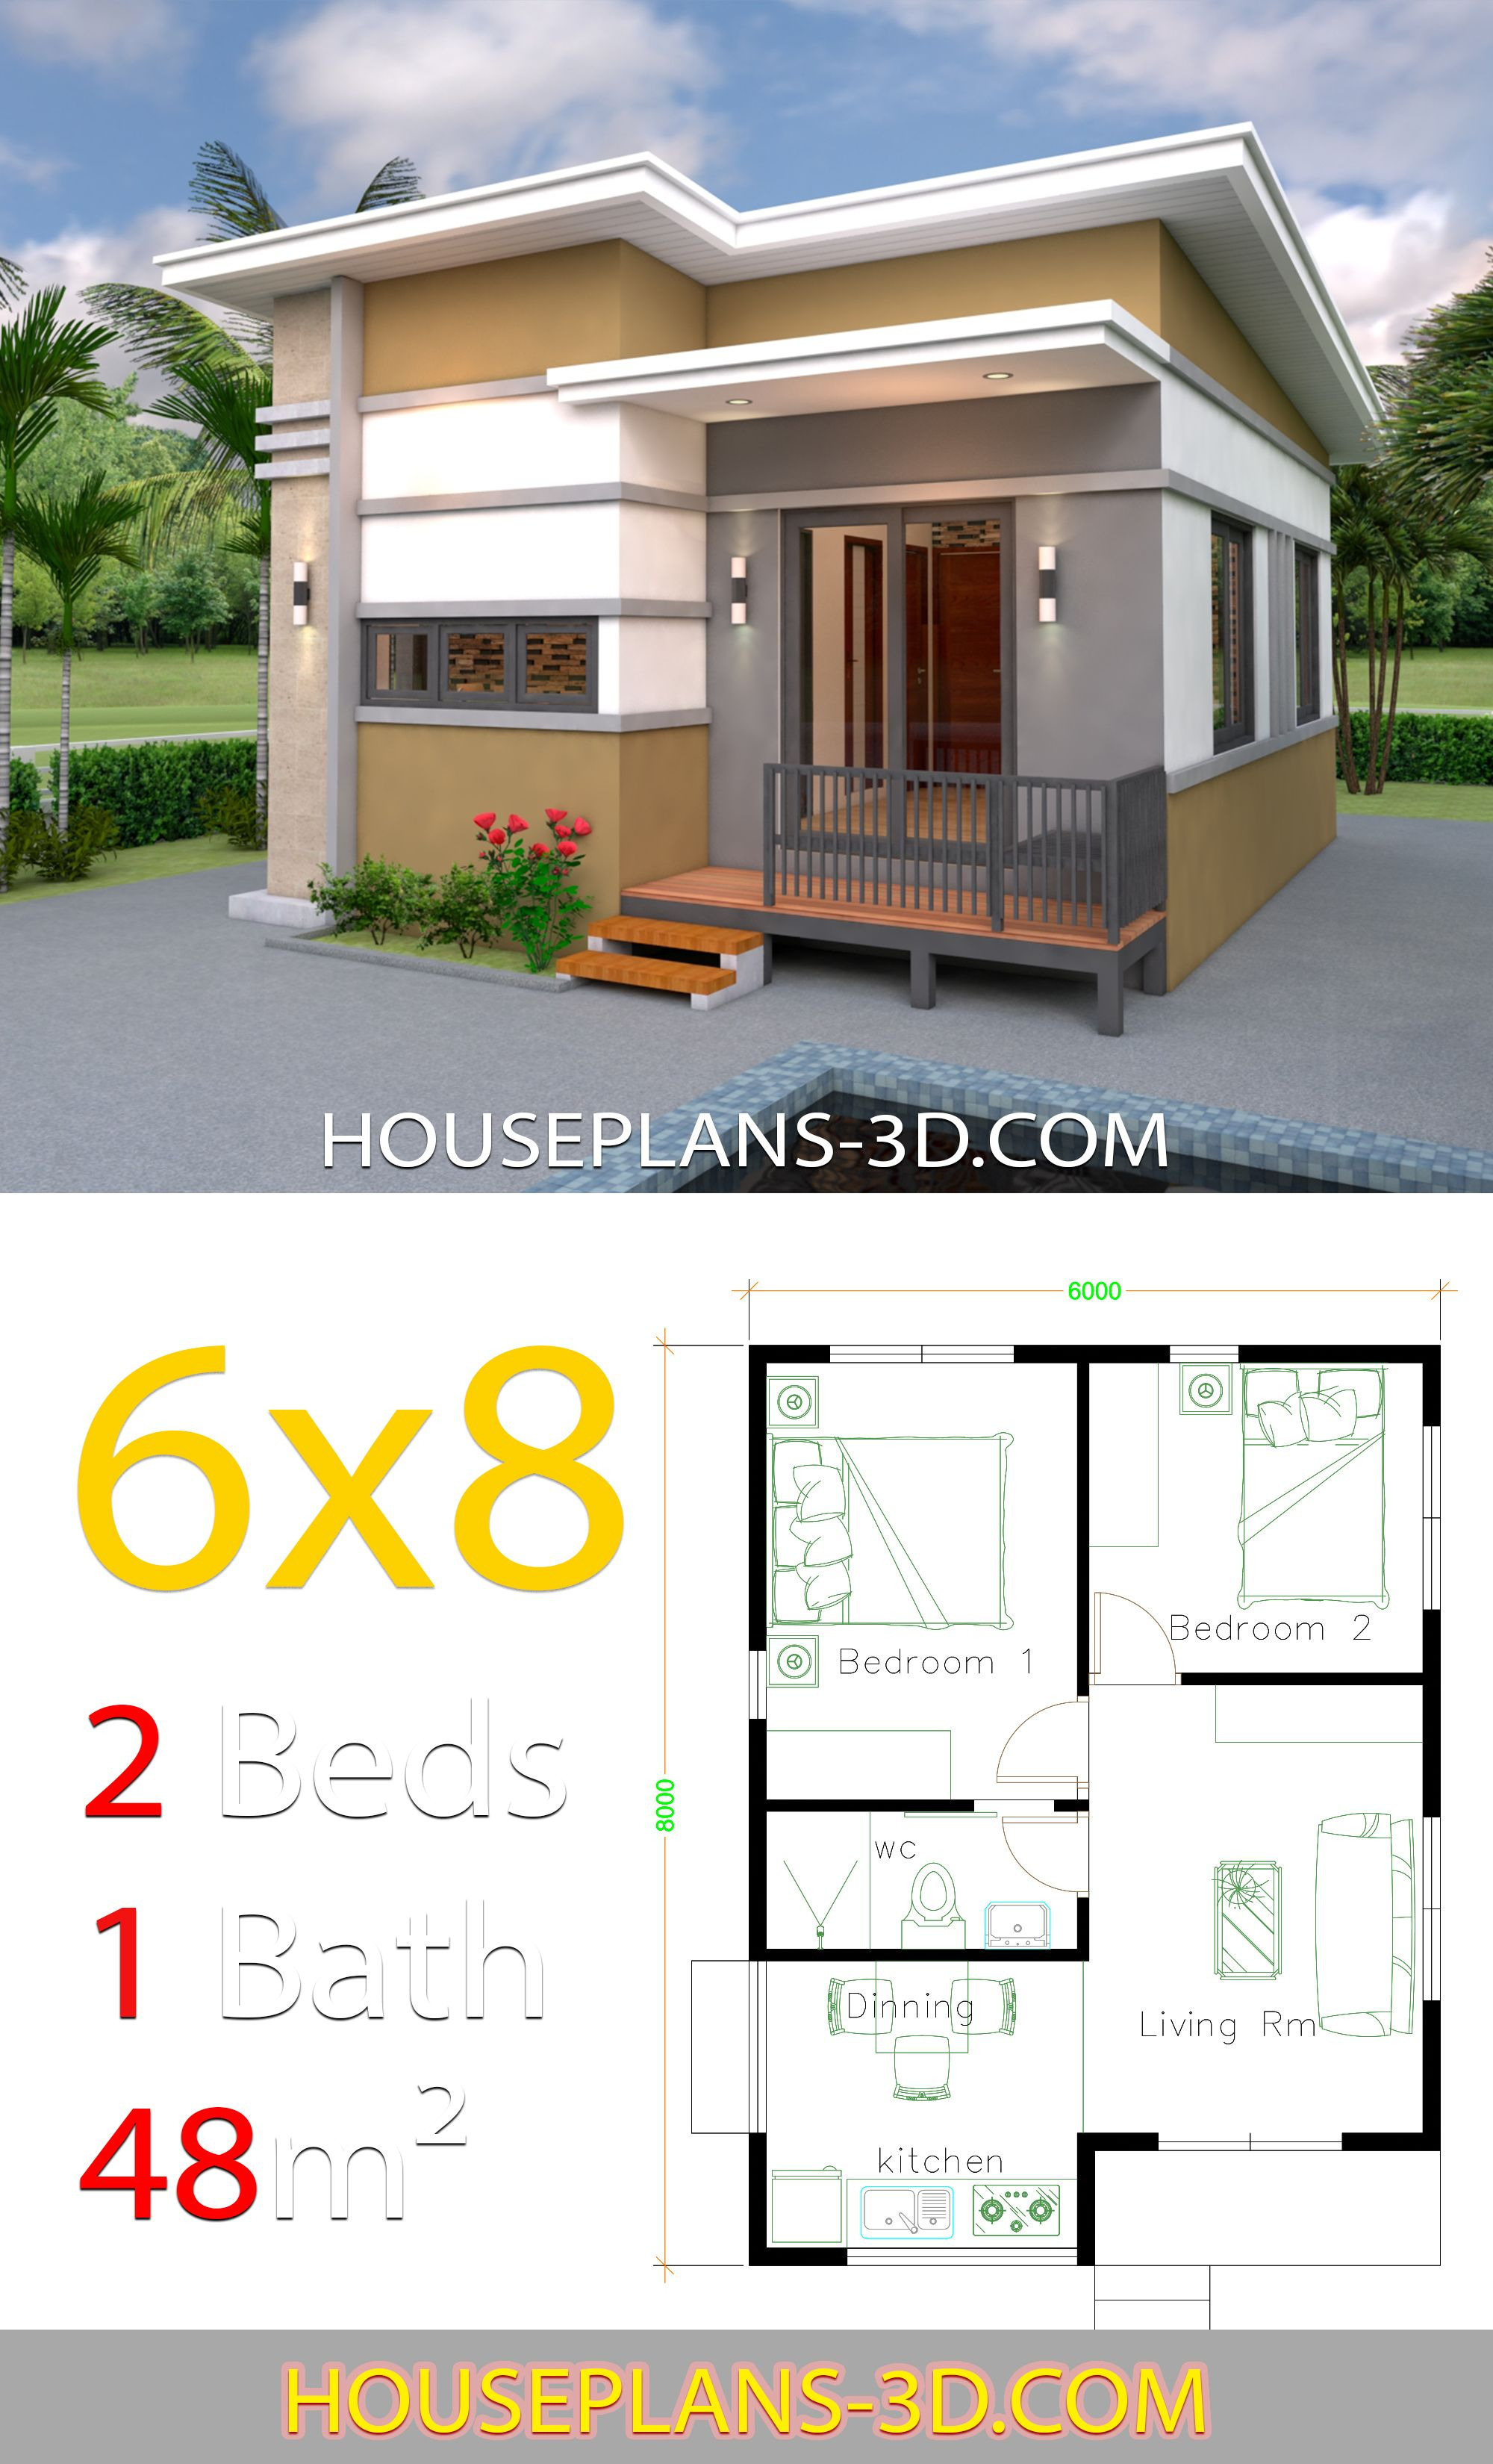 Small 2 Bedroom House Plans Unique House Design 6x8 with 2 Bedrooms House Plans 3d